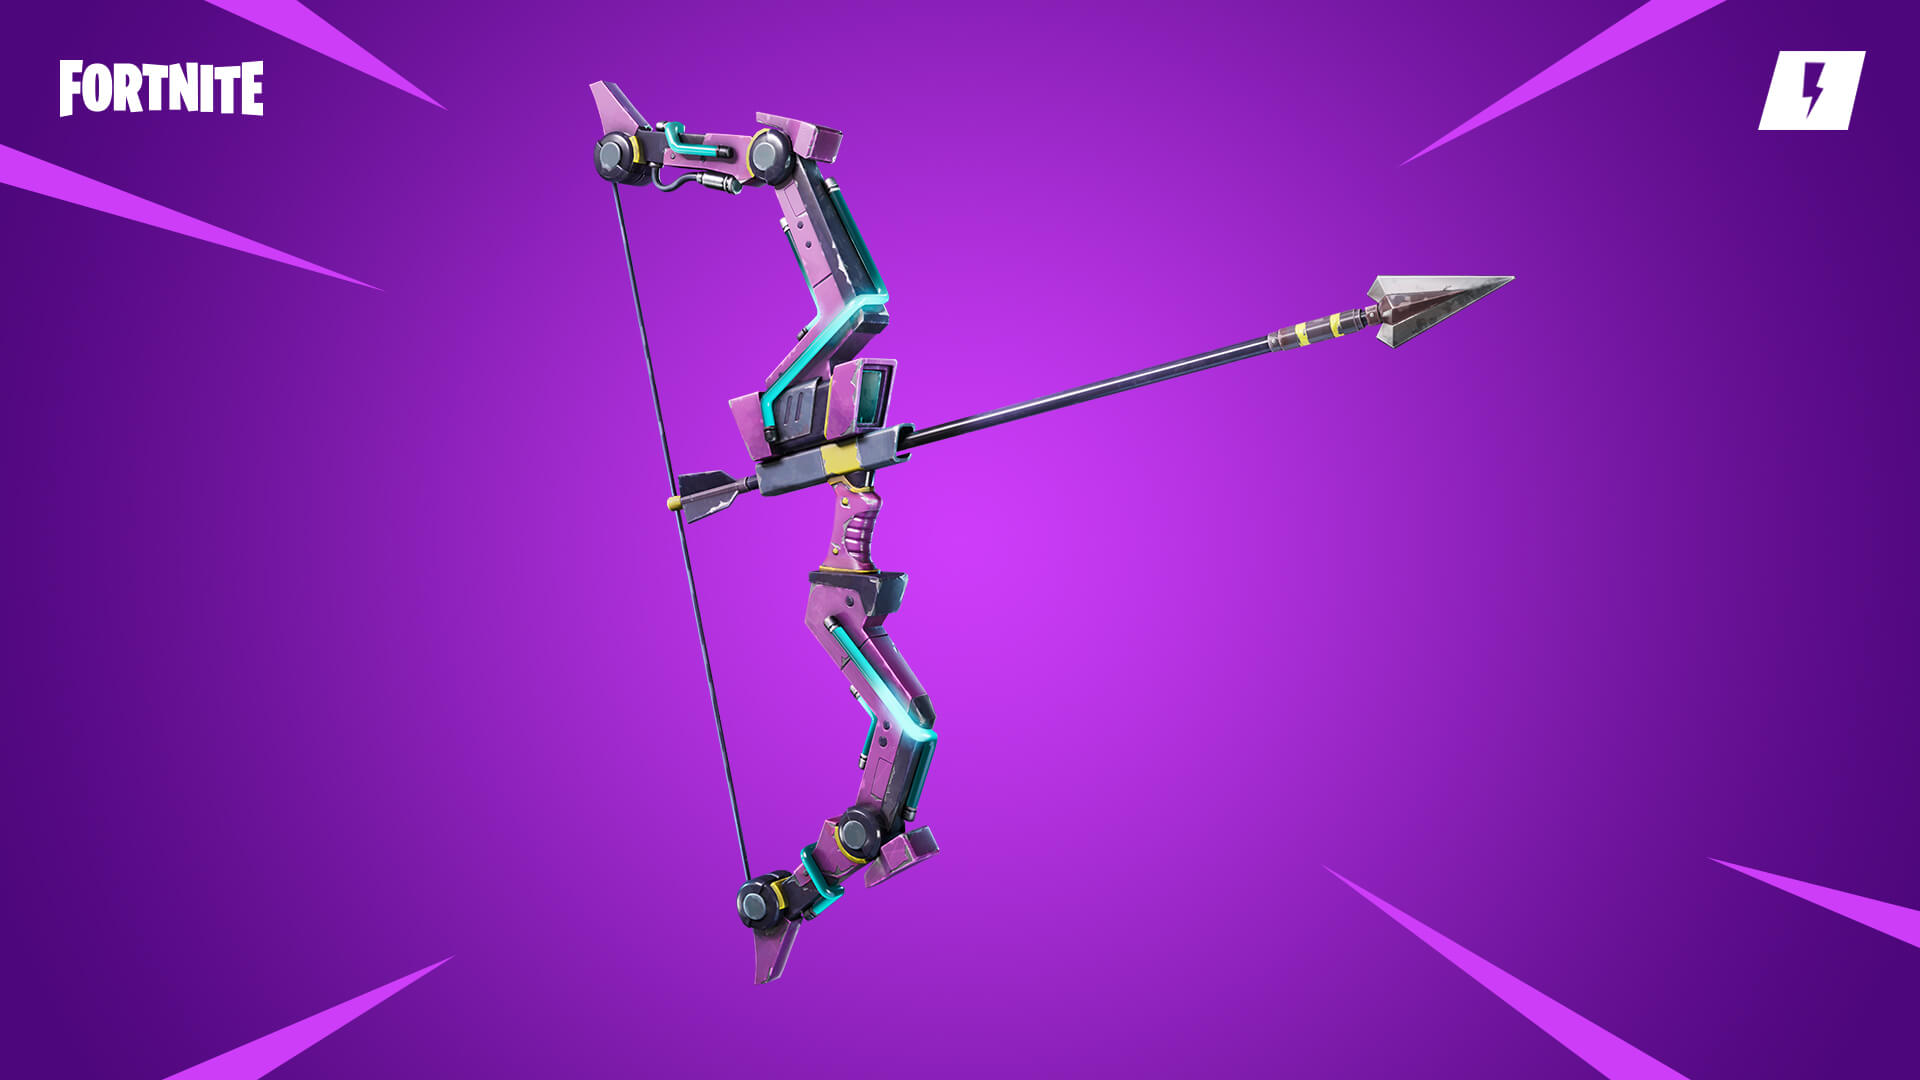 fortnite-xenion-bow.jpg